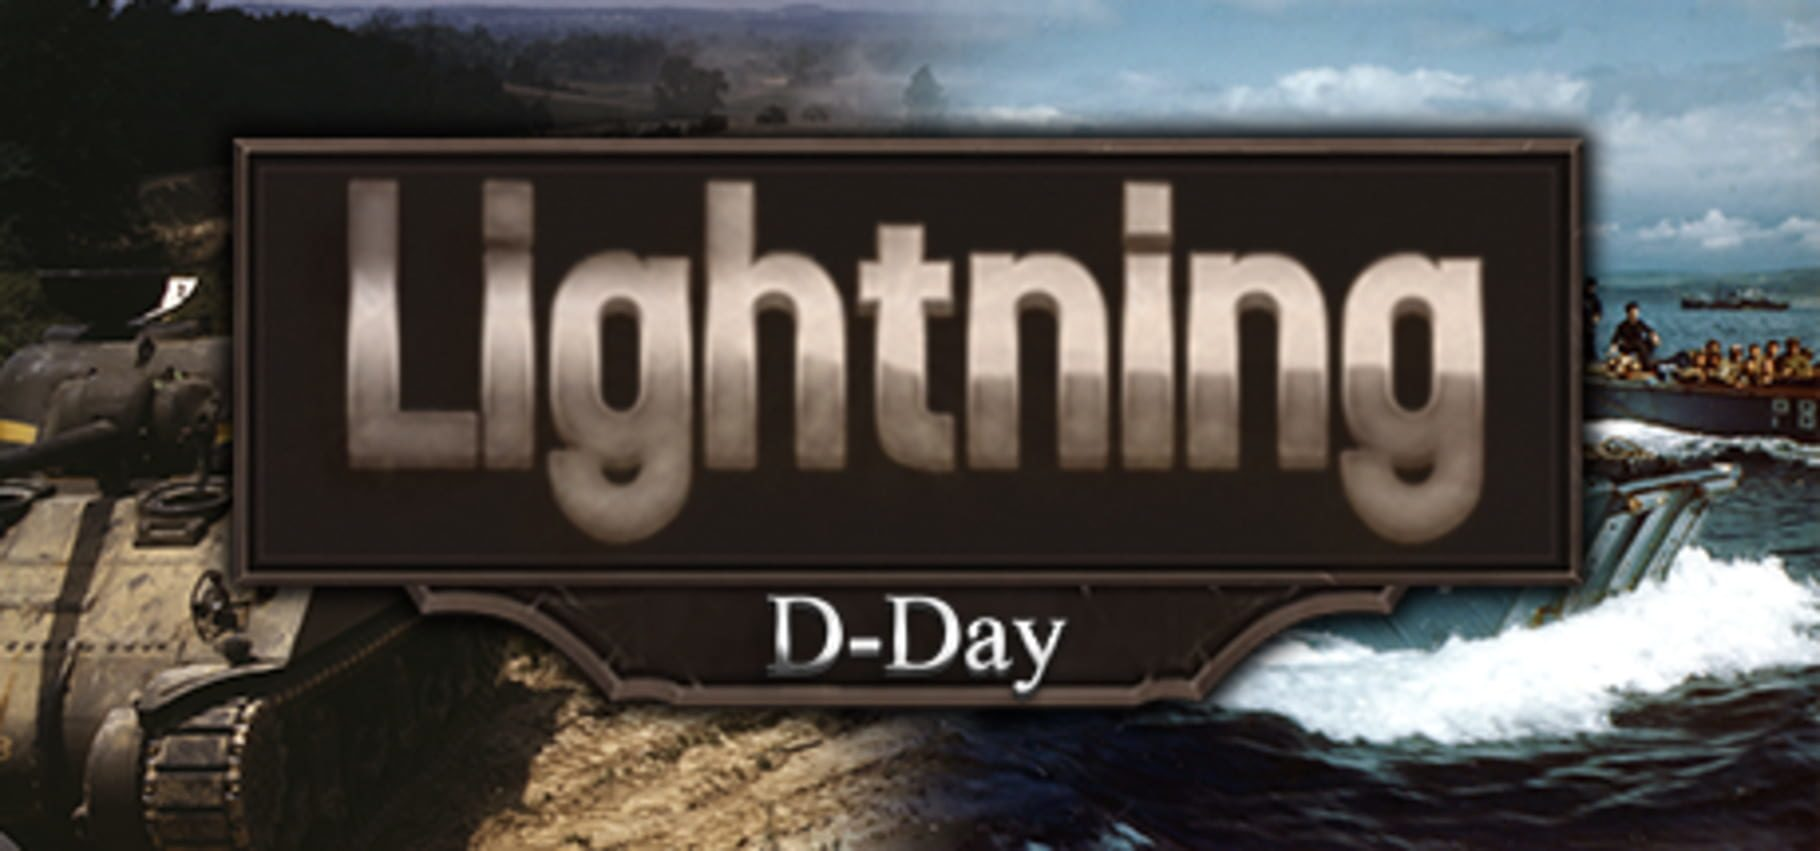 buy Lightning: D-Day cd key for xbox platform